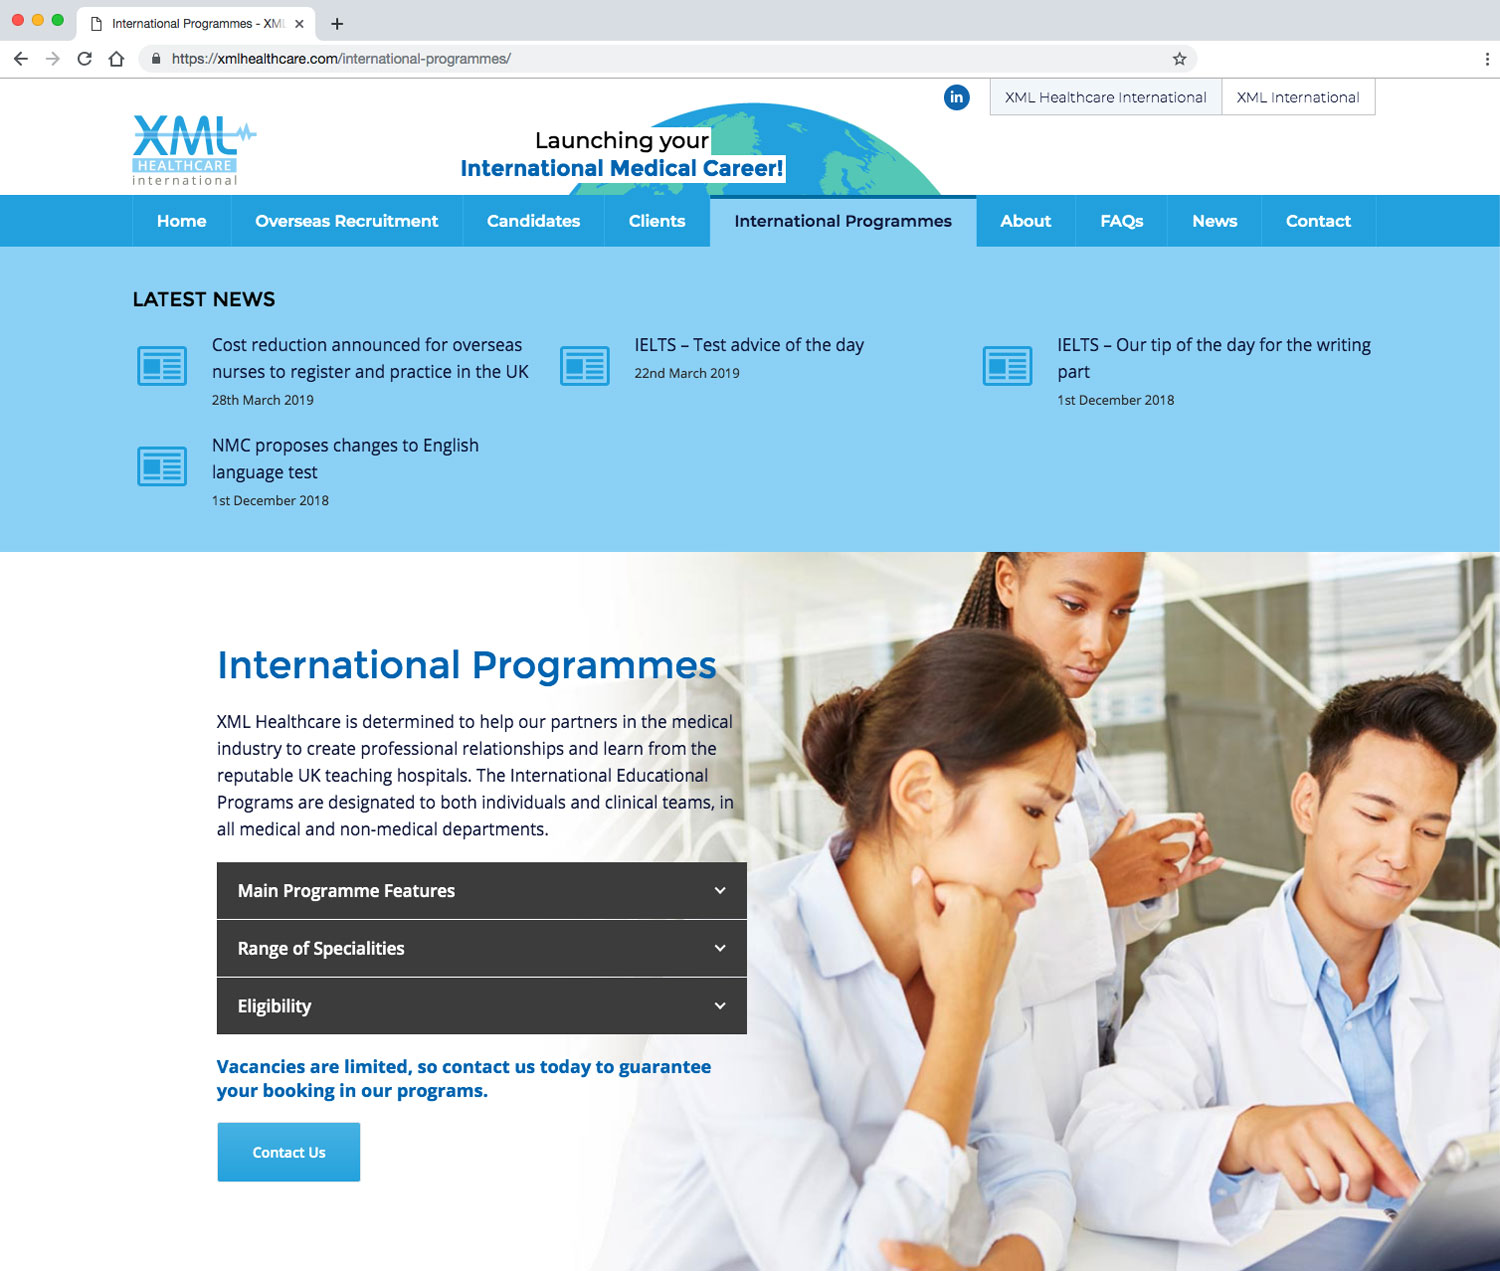 XML Healthcare International Programmes